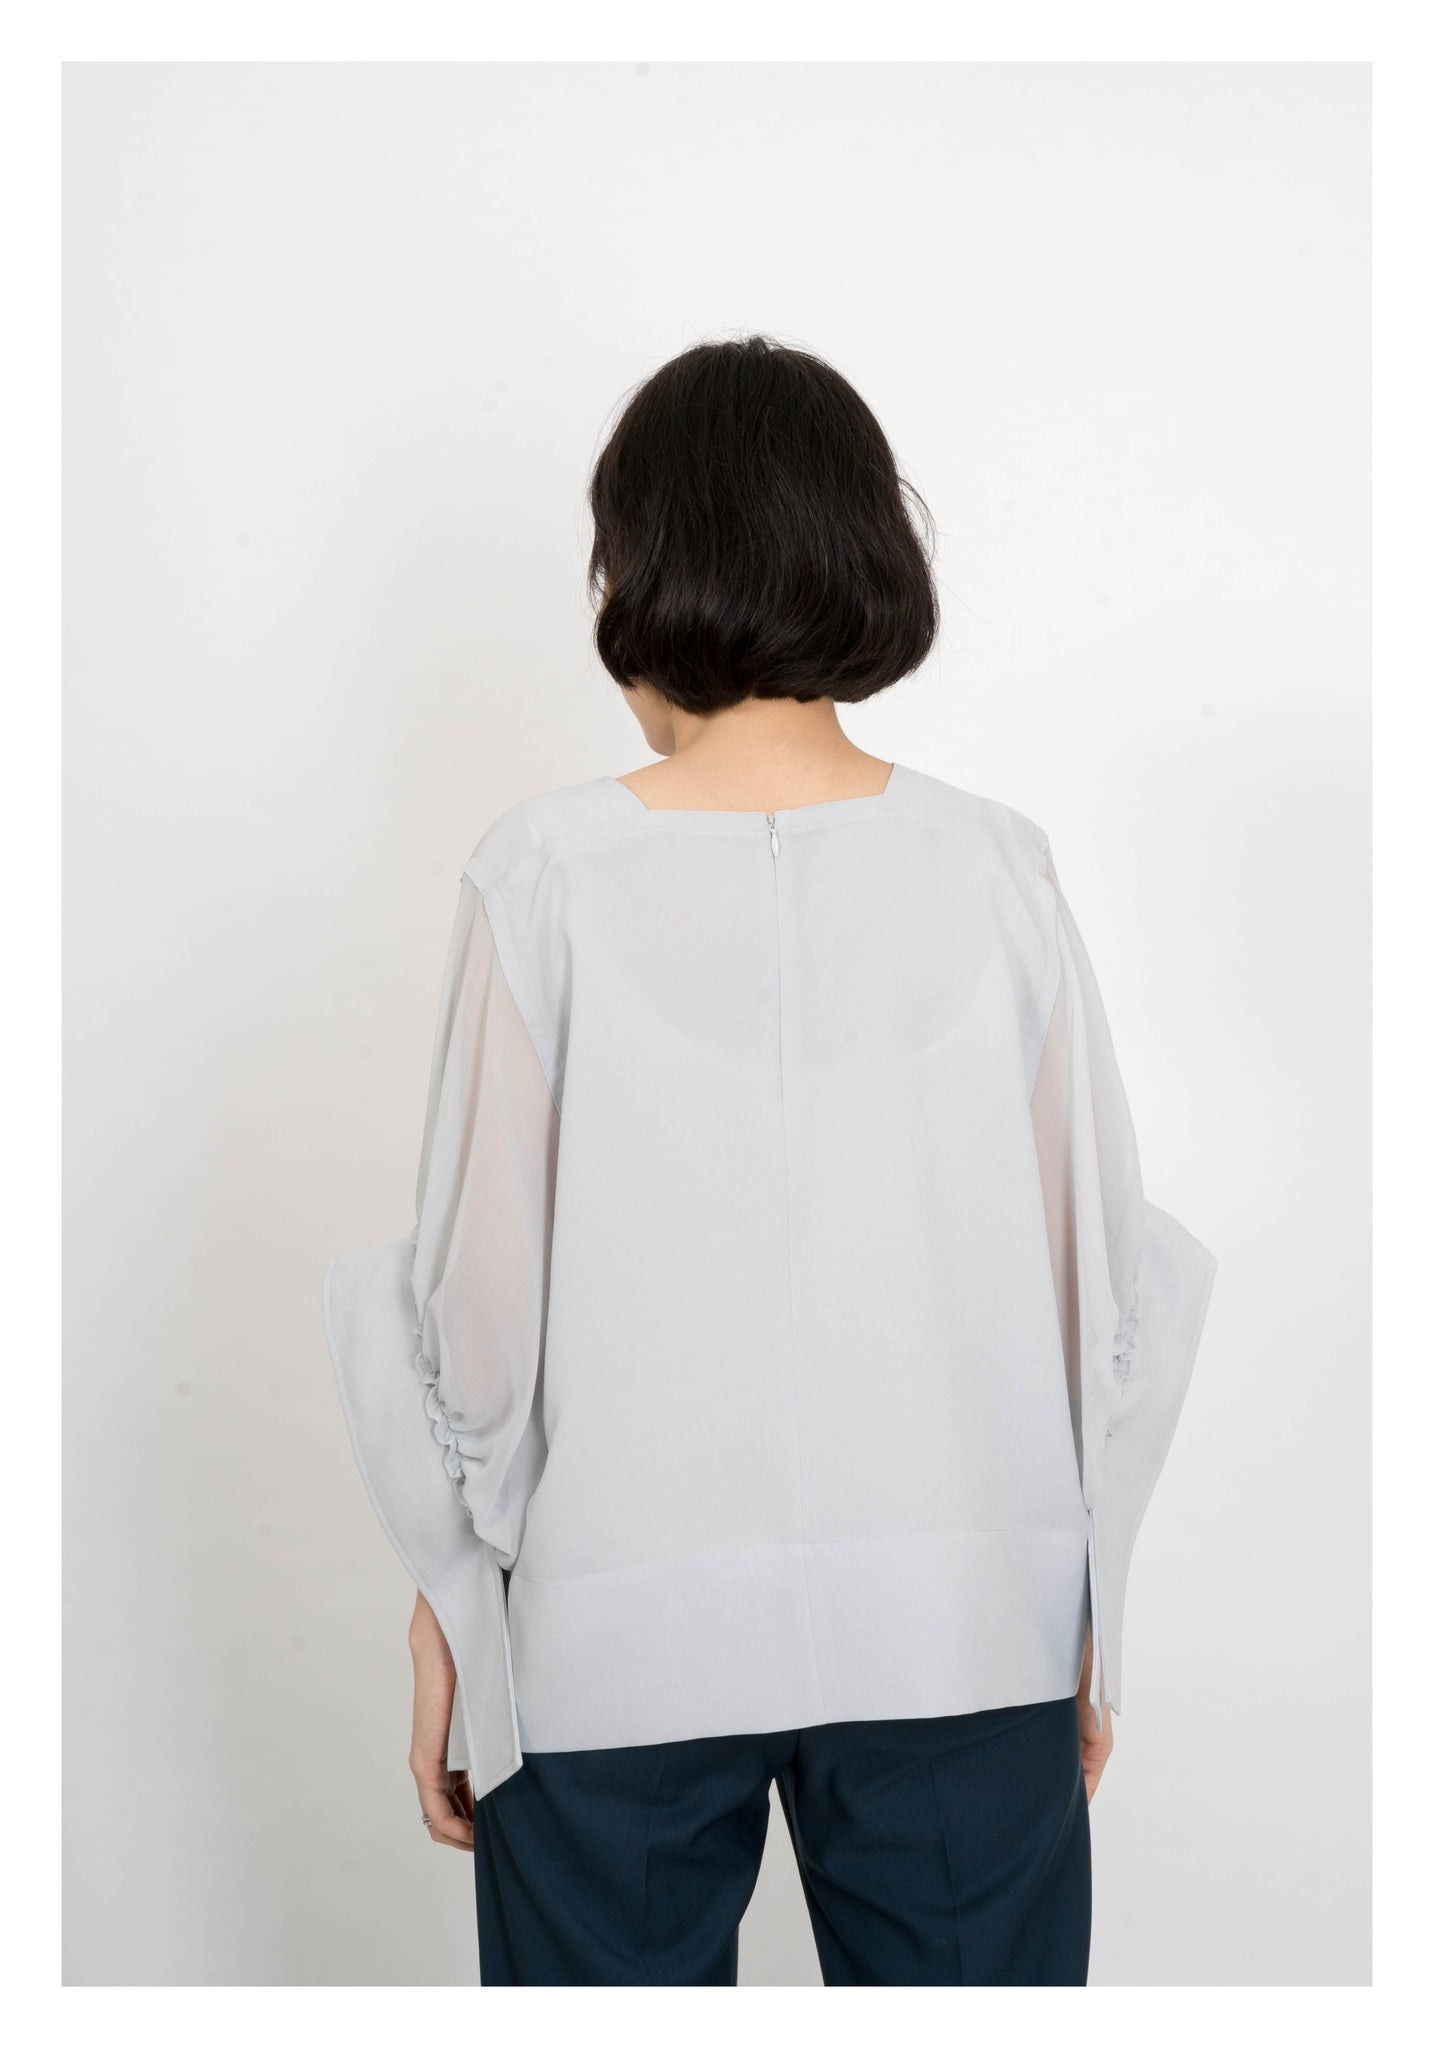 See Through Sleeve Tie Cuff Blouse Light Blue - whoami